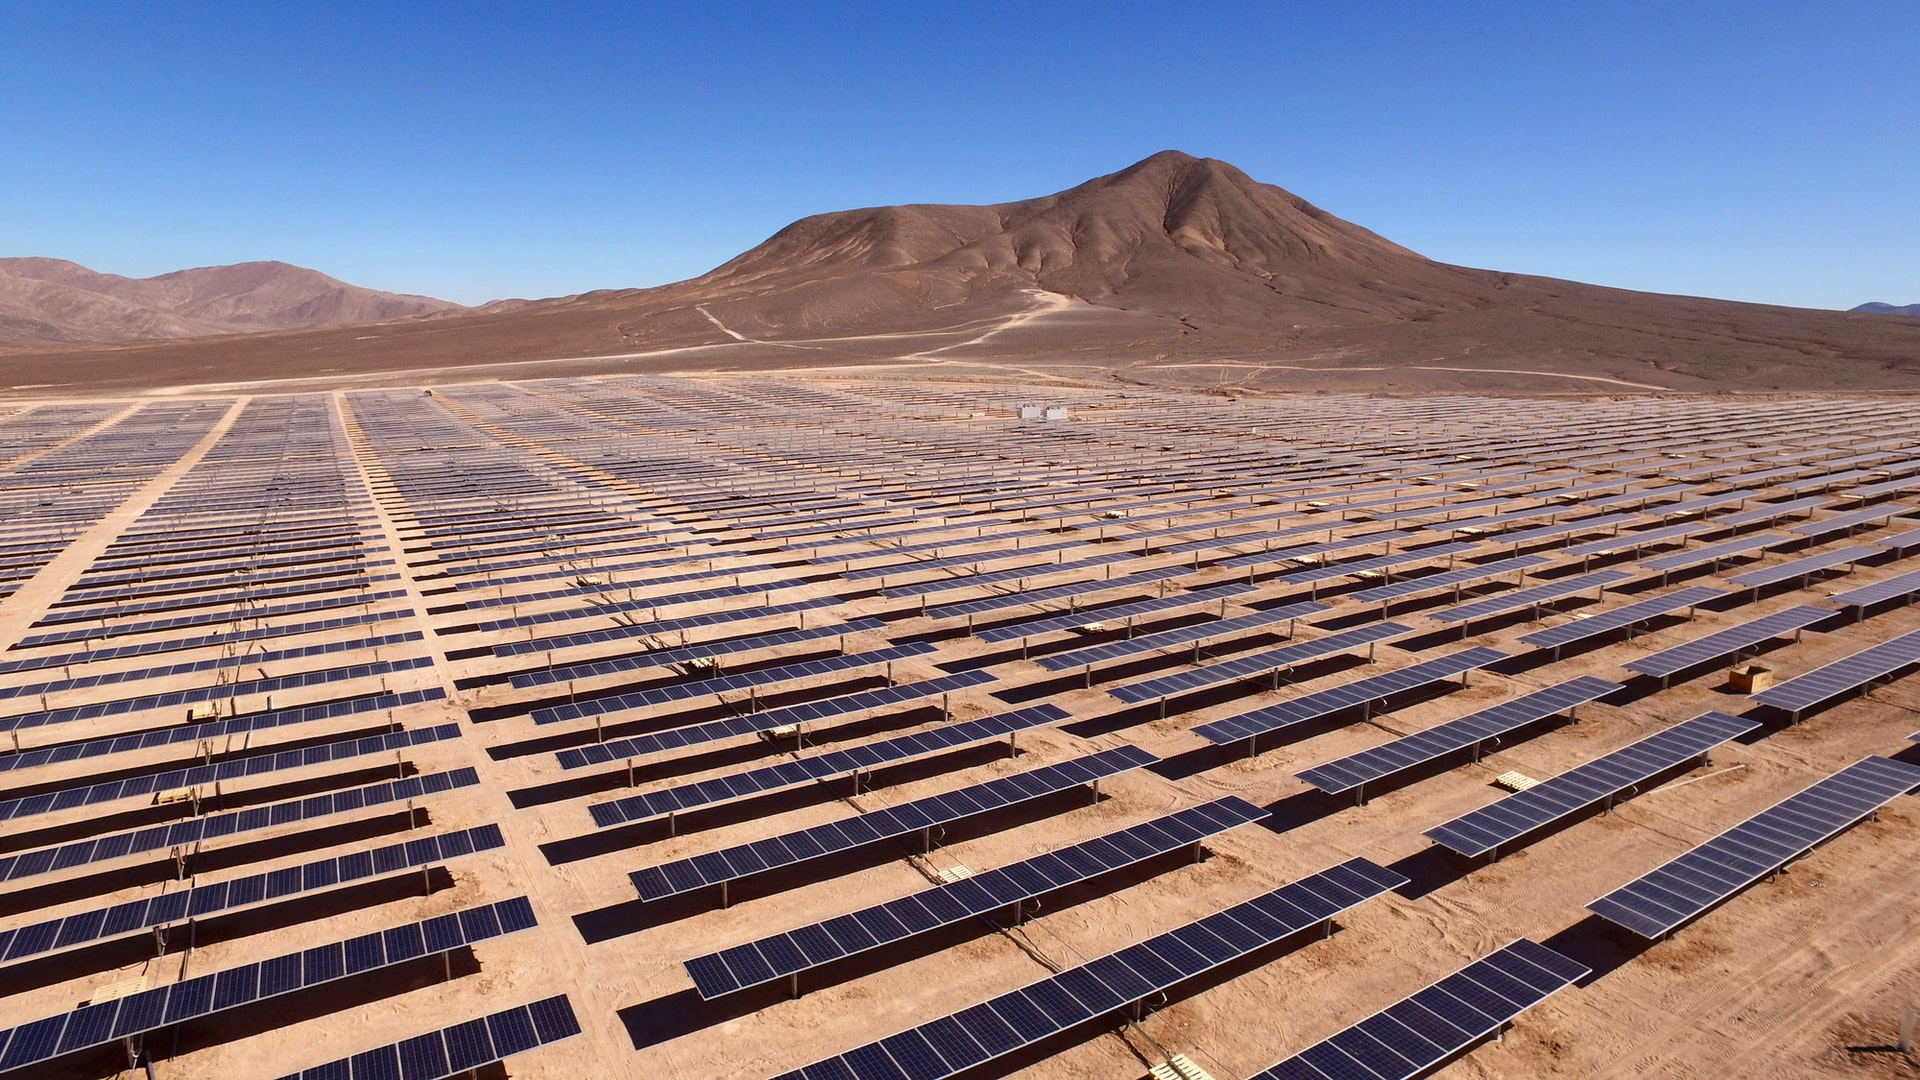 Solar Surges into the New Year as Big Oil Begins Their Own Renewable Rollout